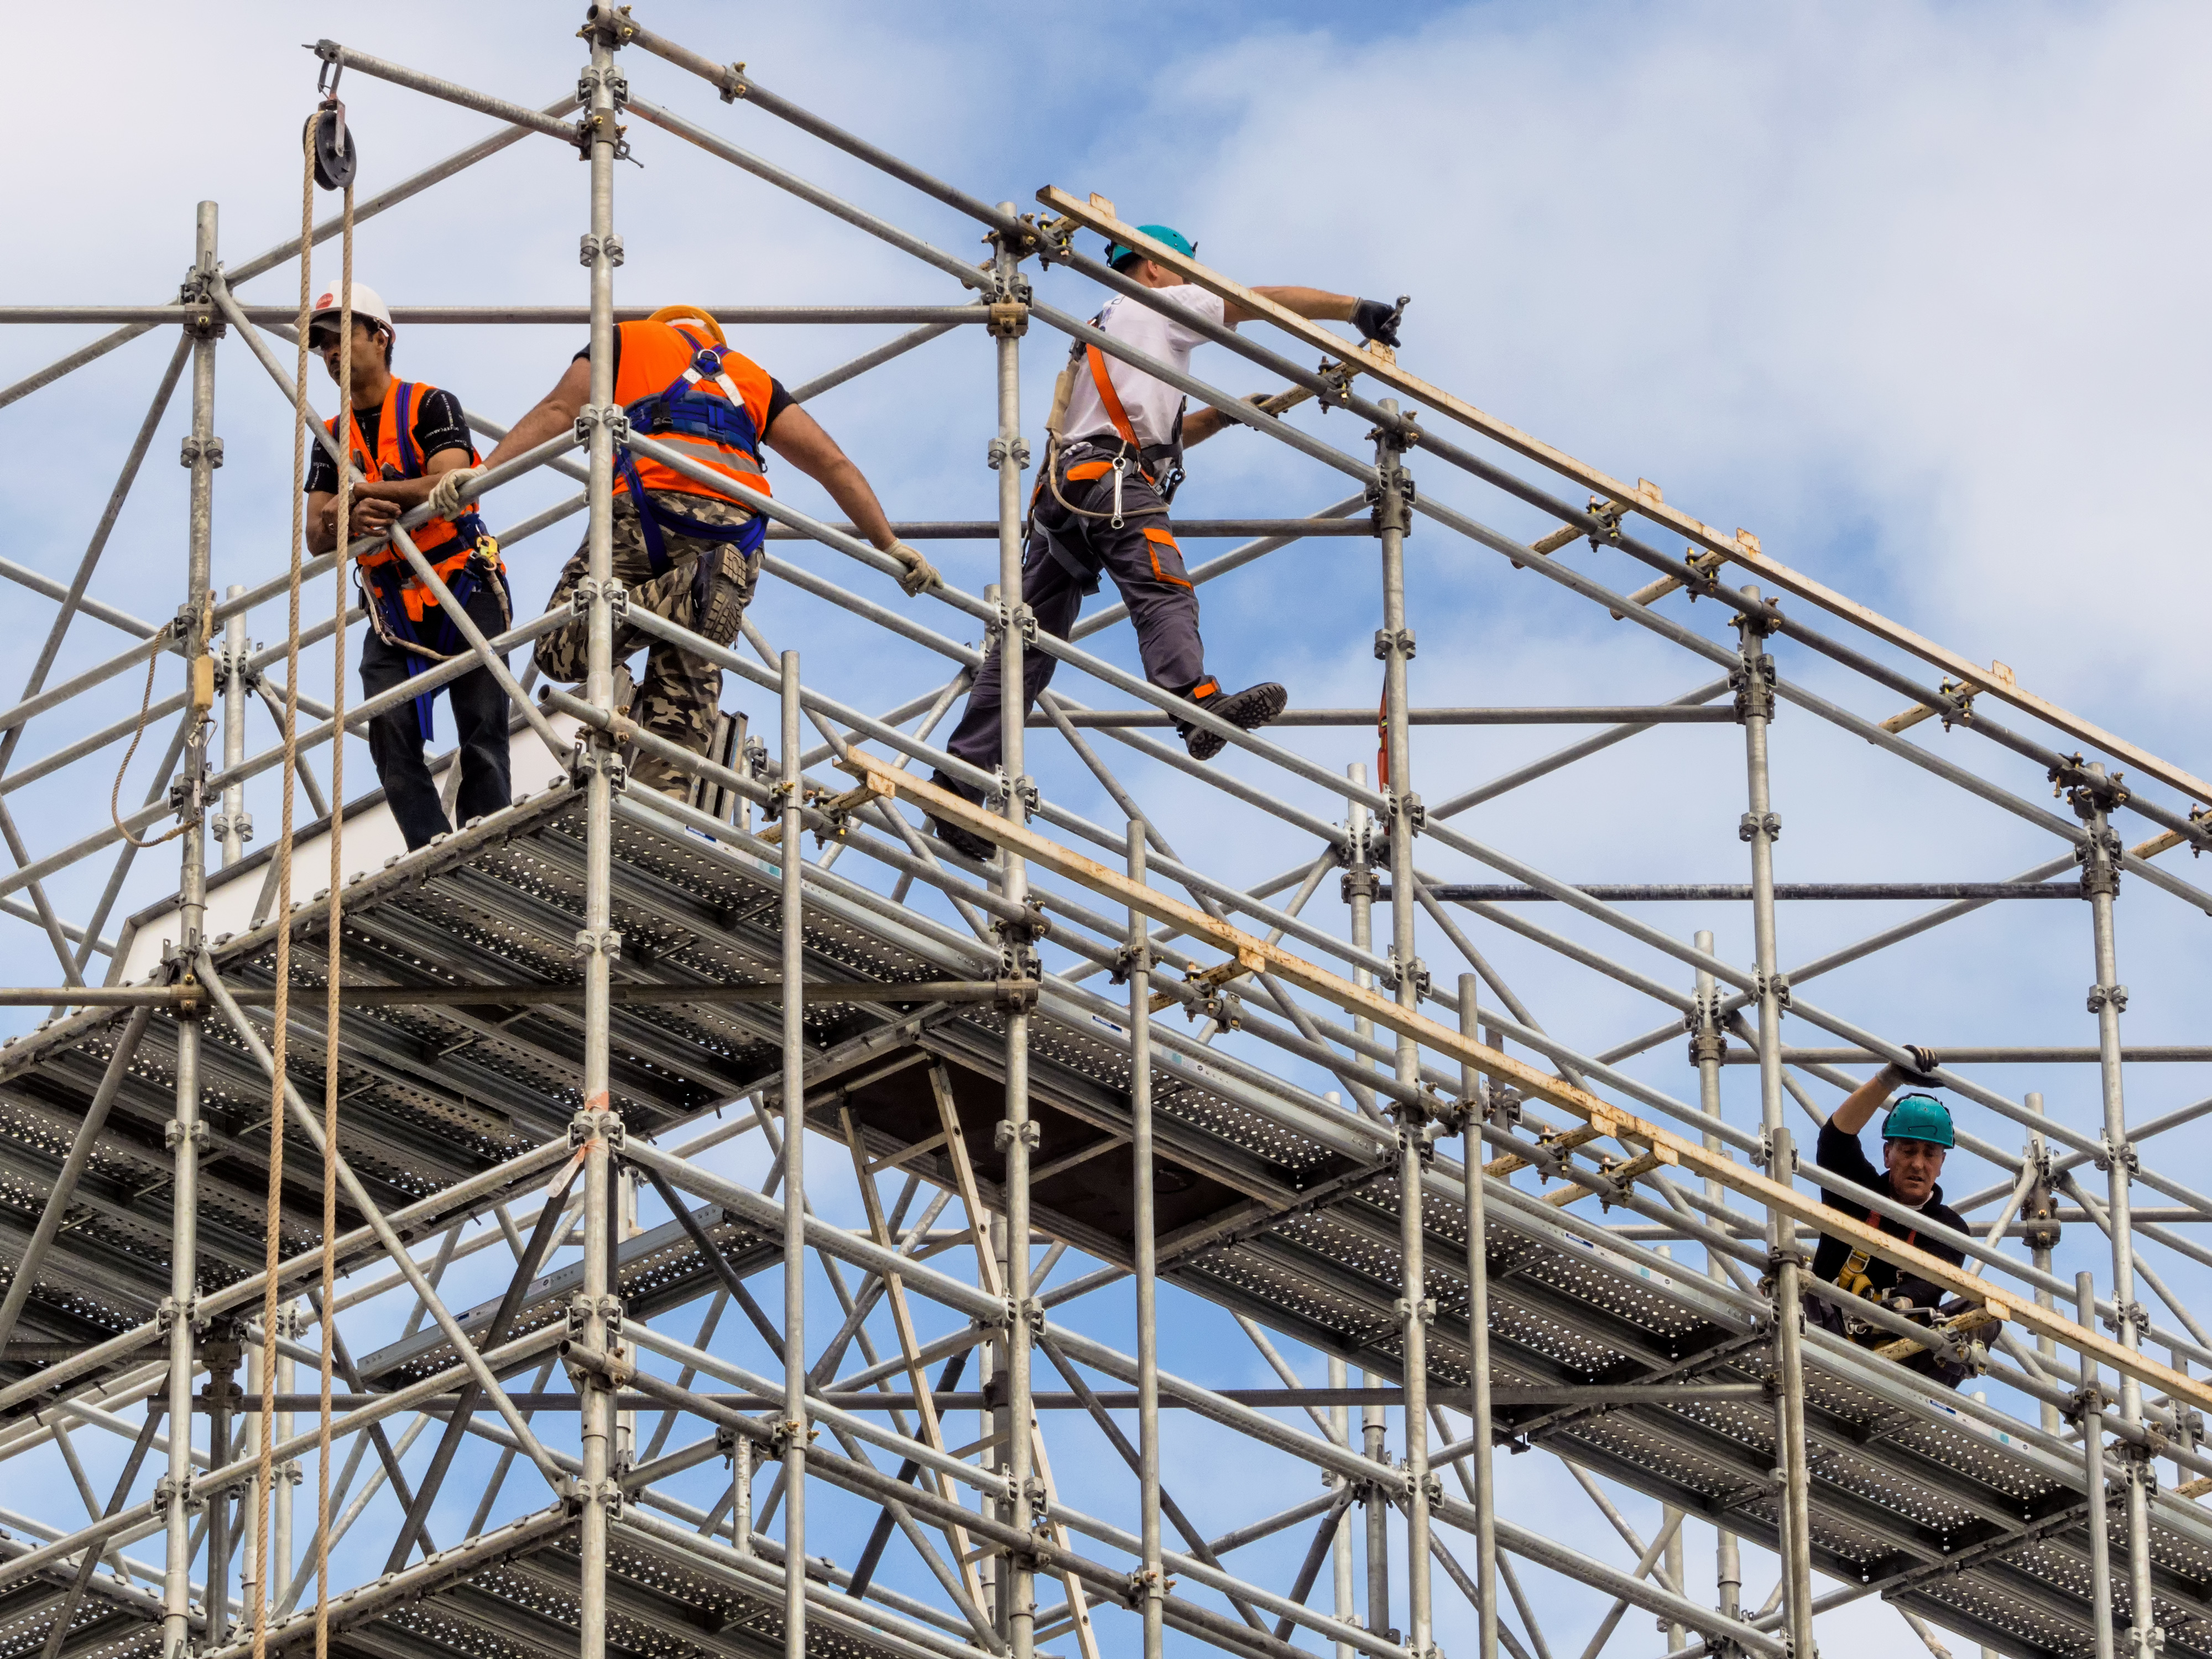 Three Pacific Islander-Australians scaffolding on the top of a Brisbane skyscraper.